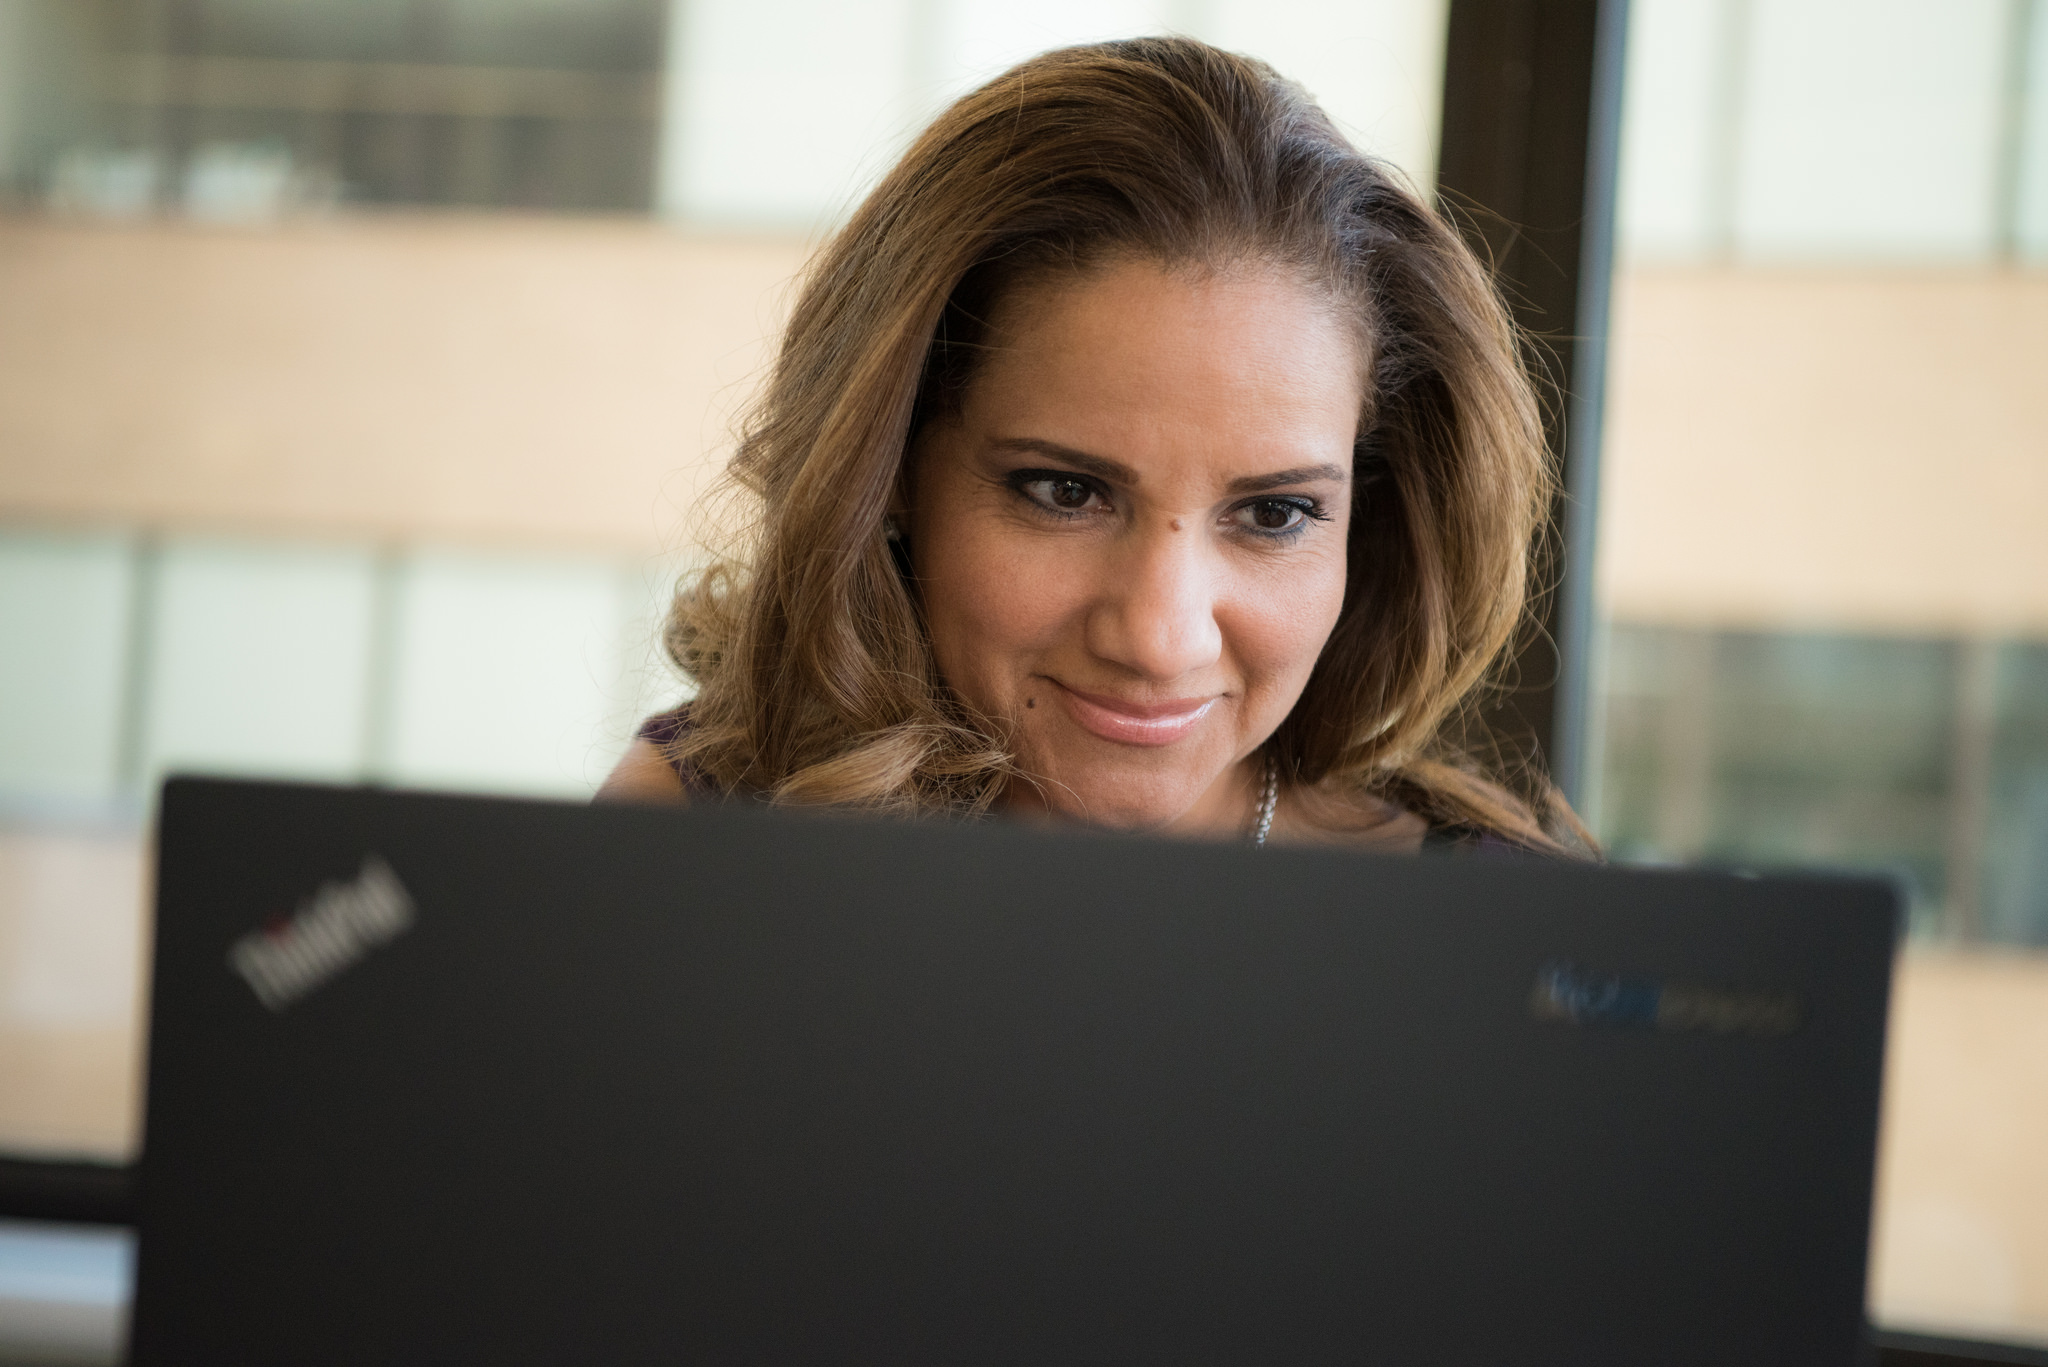 Spring 2018 Career Restart Resources - Woman on Computer